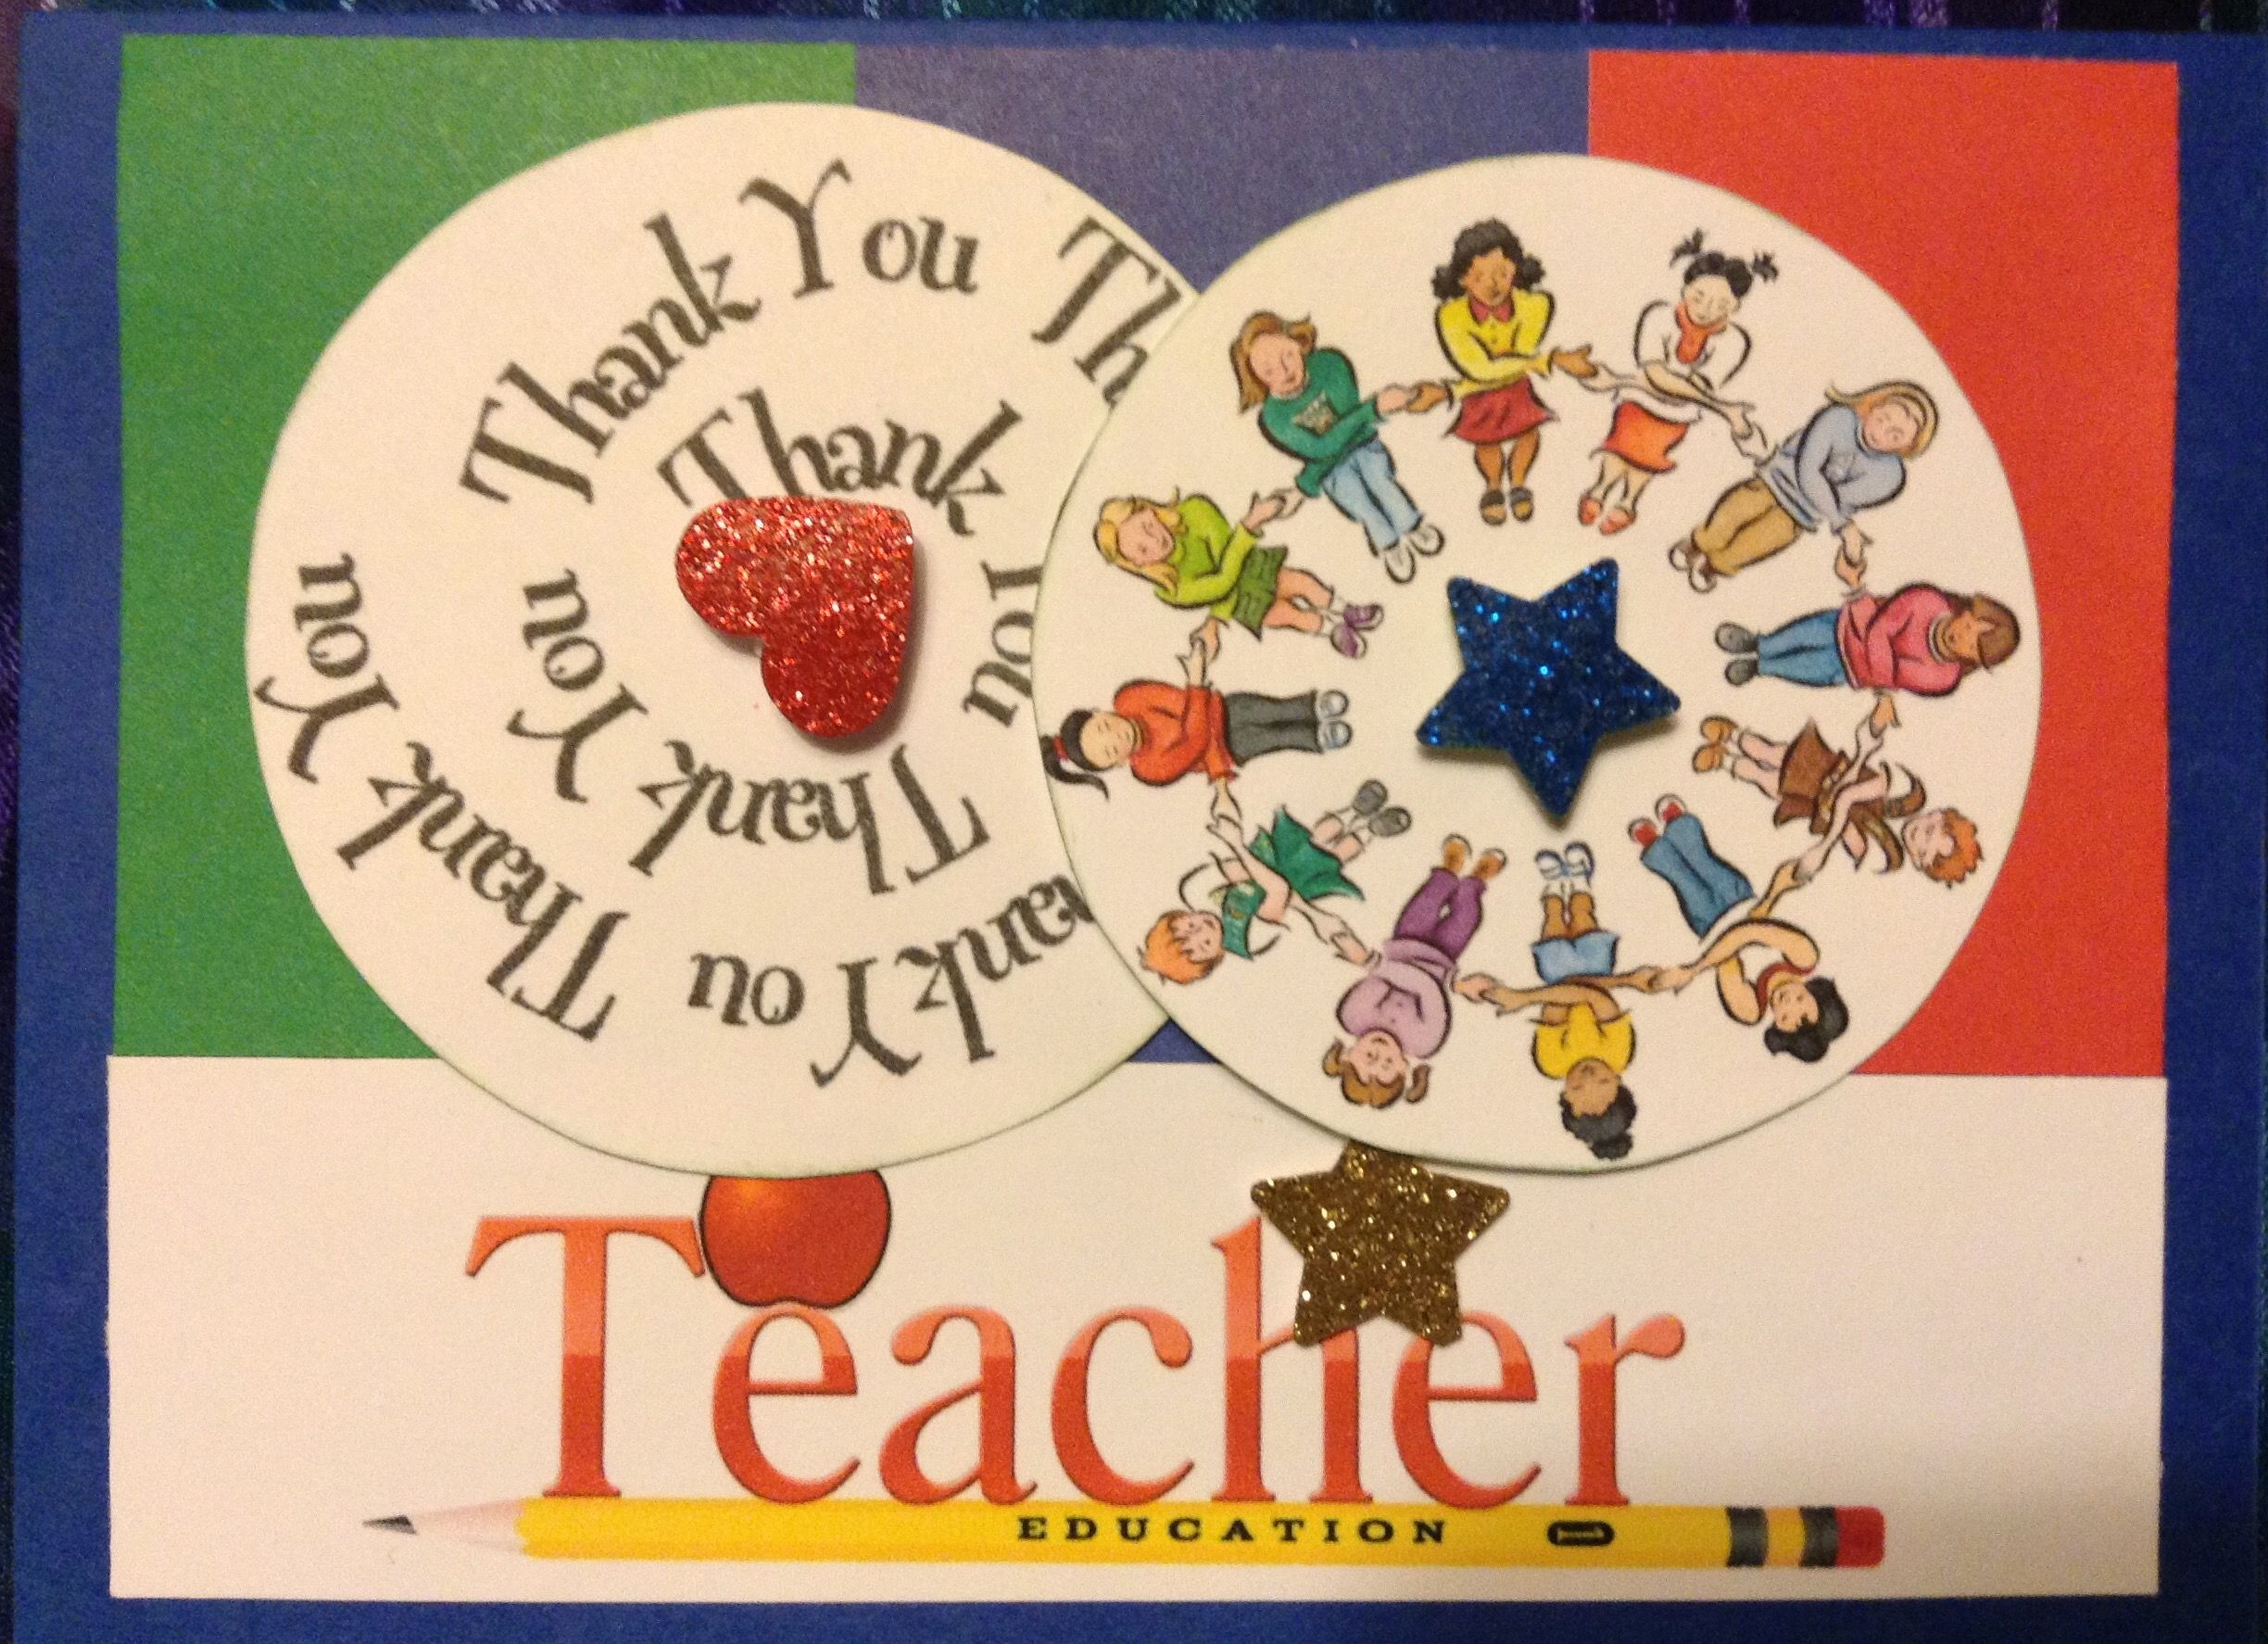 Thank you to a teacher in elementary or day care end of scholl or